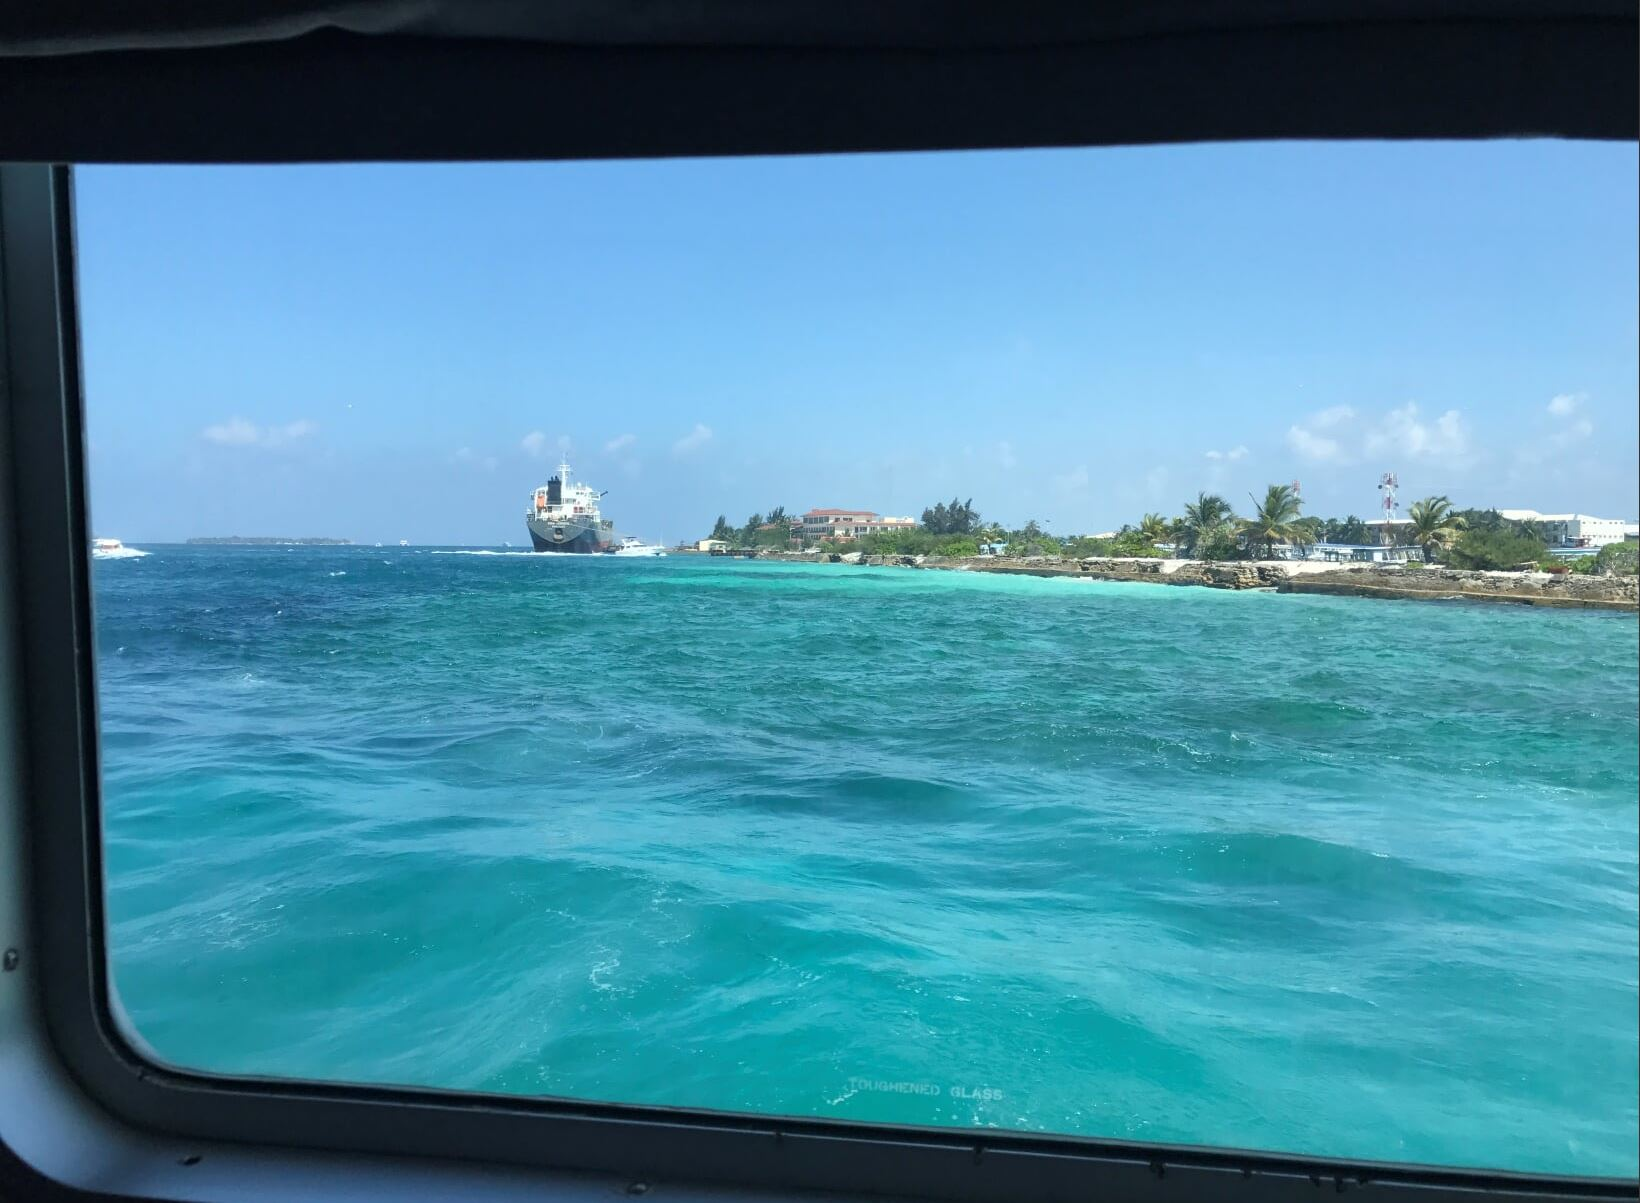 The View from Speedboat to the Indian Ocean While going to Kuramathi Island Resort